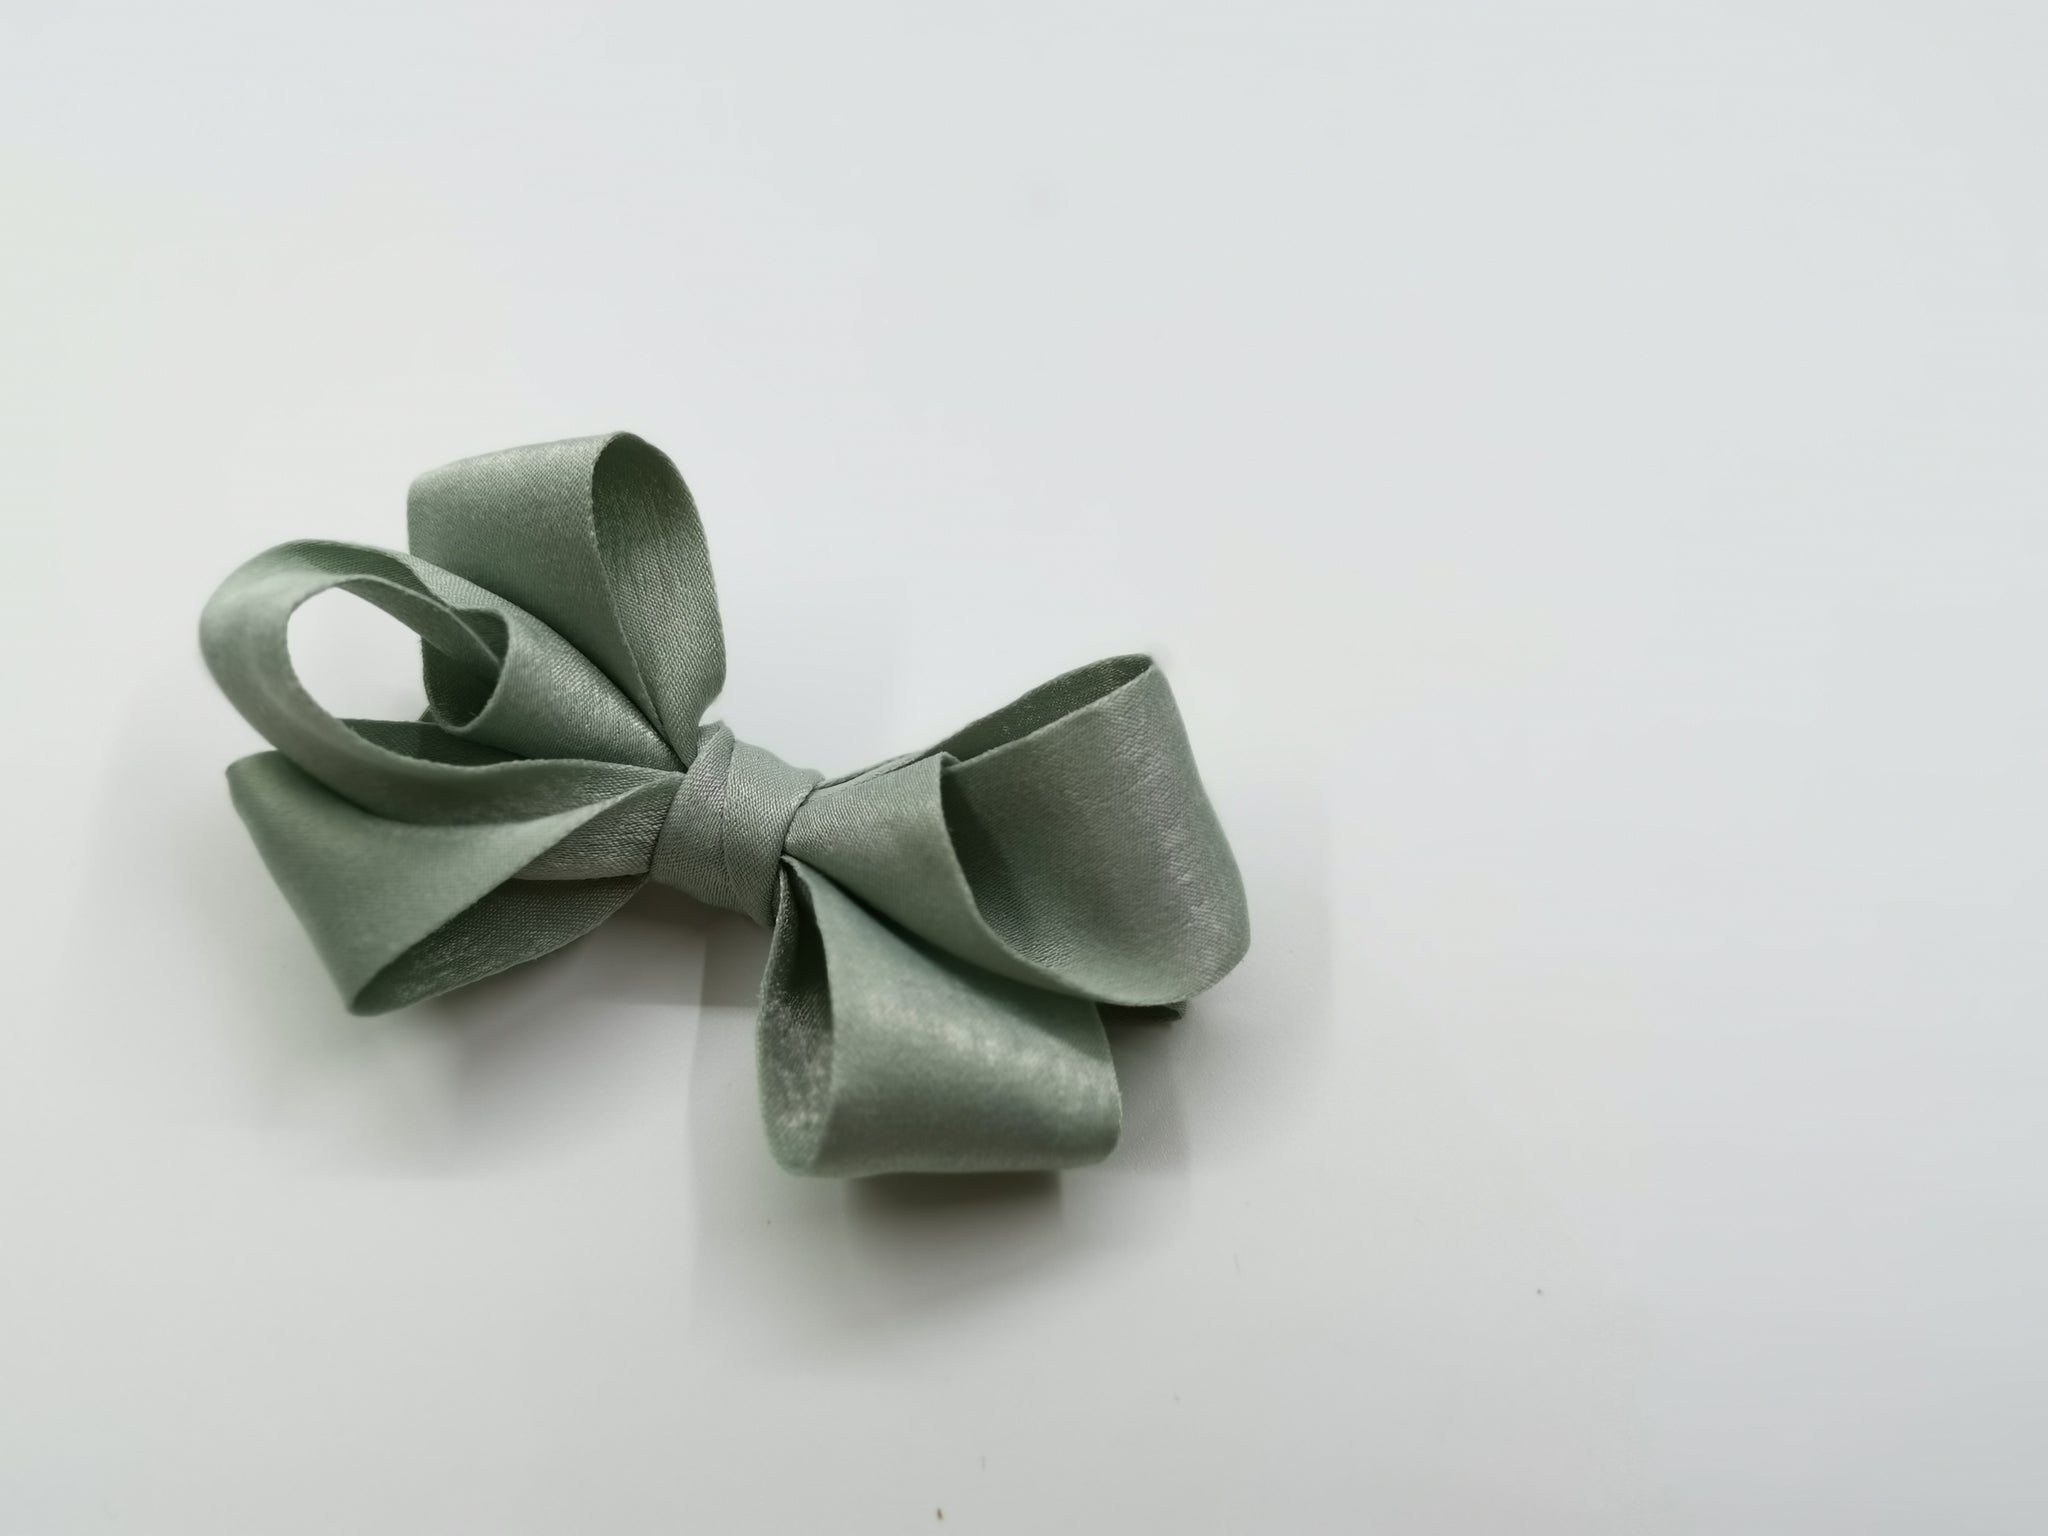 Look-at-Me Bow